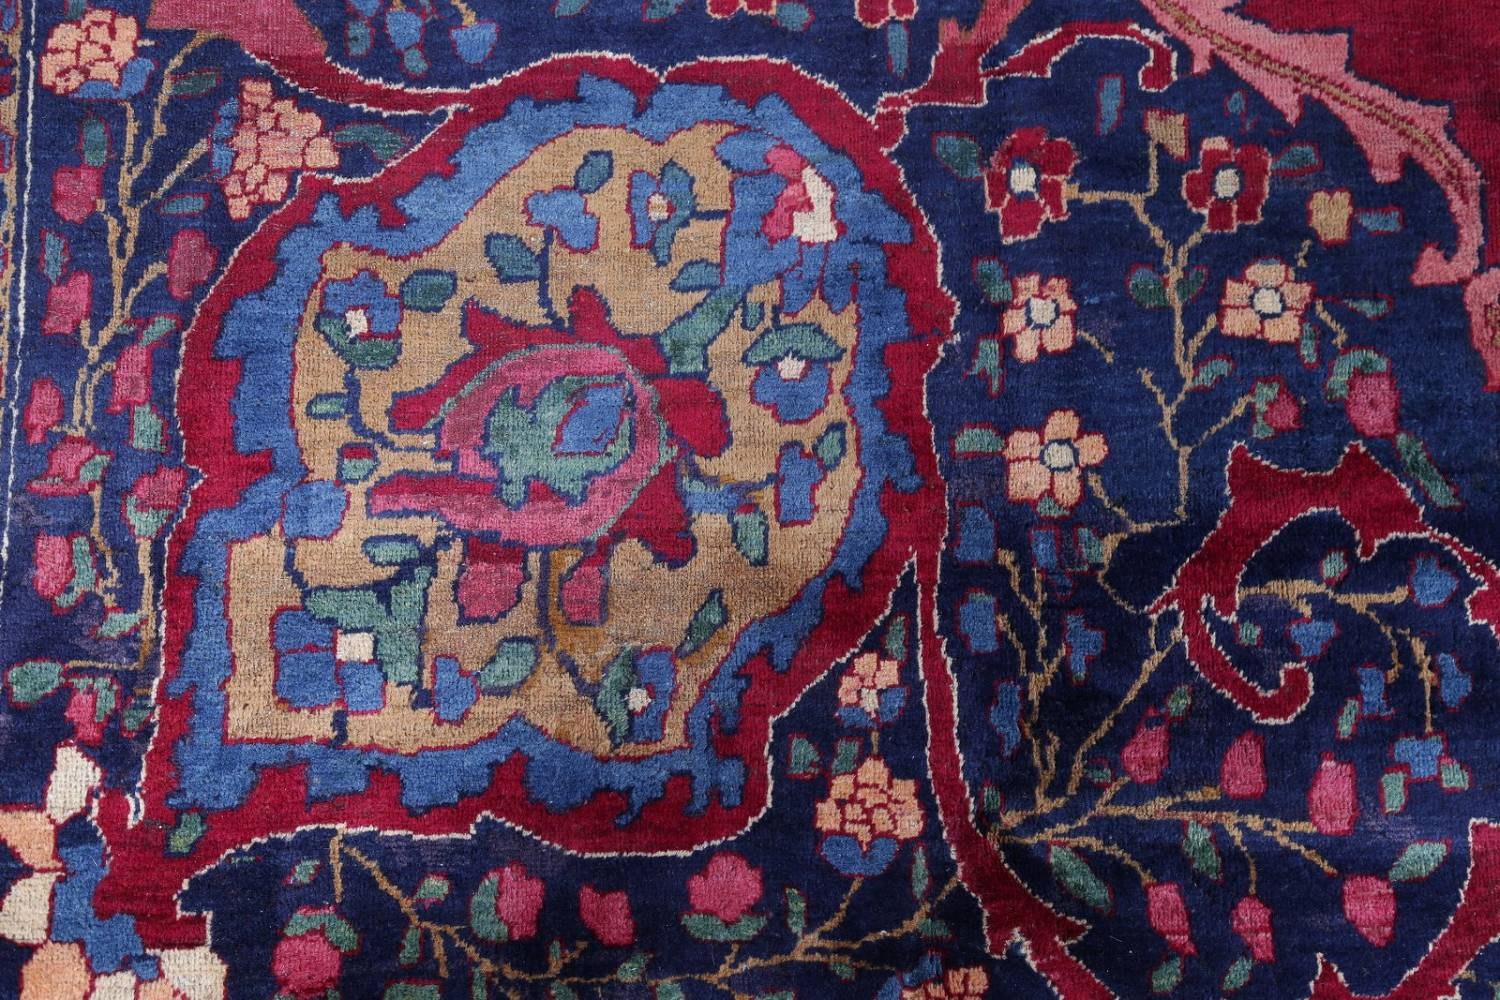 Pre-1900 Vegetable Dye Yazd Antique Persian Hand-Knotted  11x15 Wool Area Rug image 11